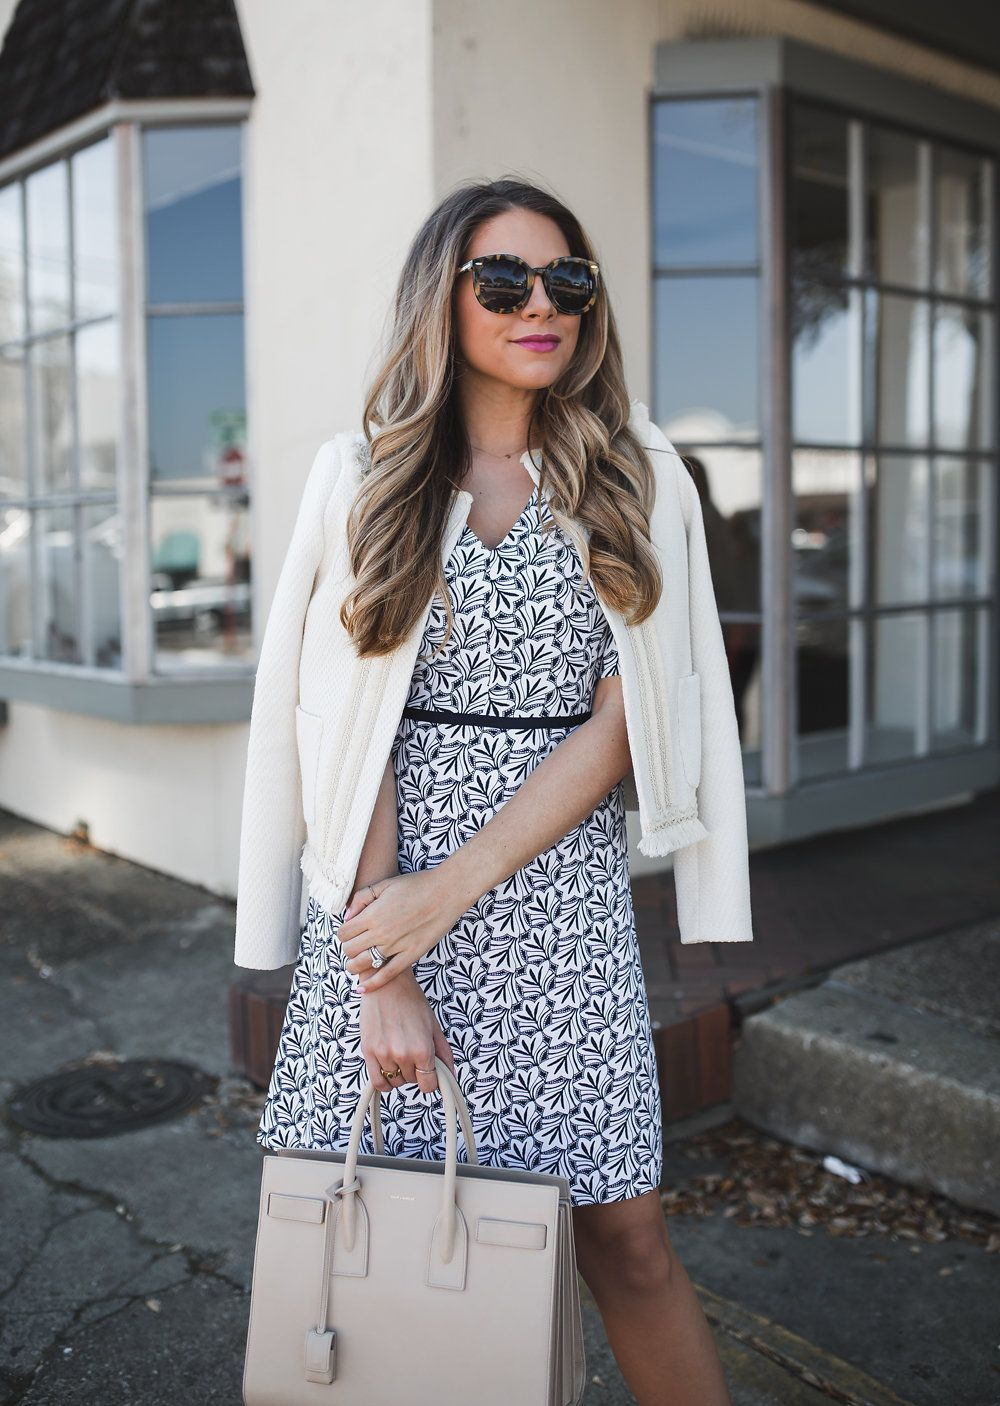 and White Easter Dress Blue and White Easter Dress   The Teacher Diva: a Dallas Fashion Blog featuring Beauty & Lifestyle